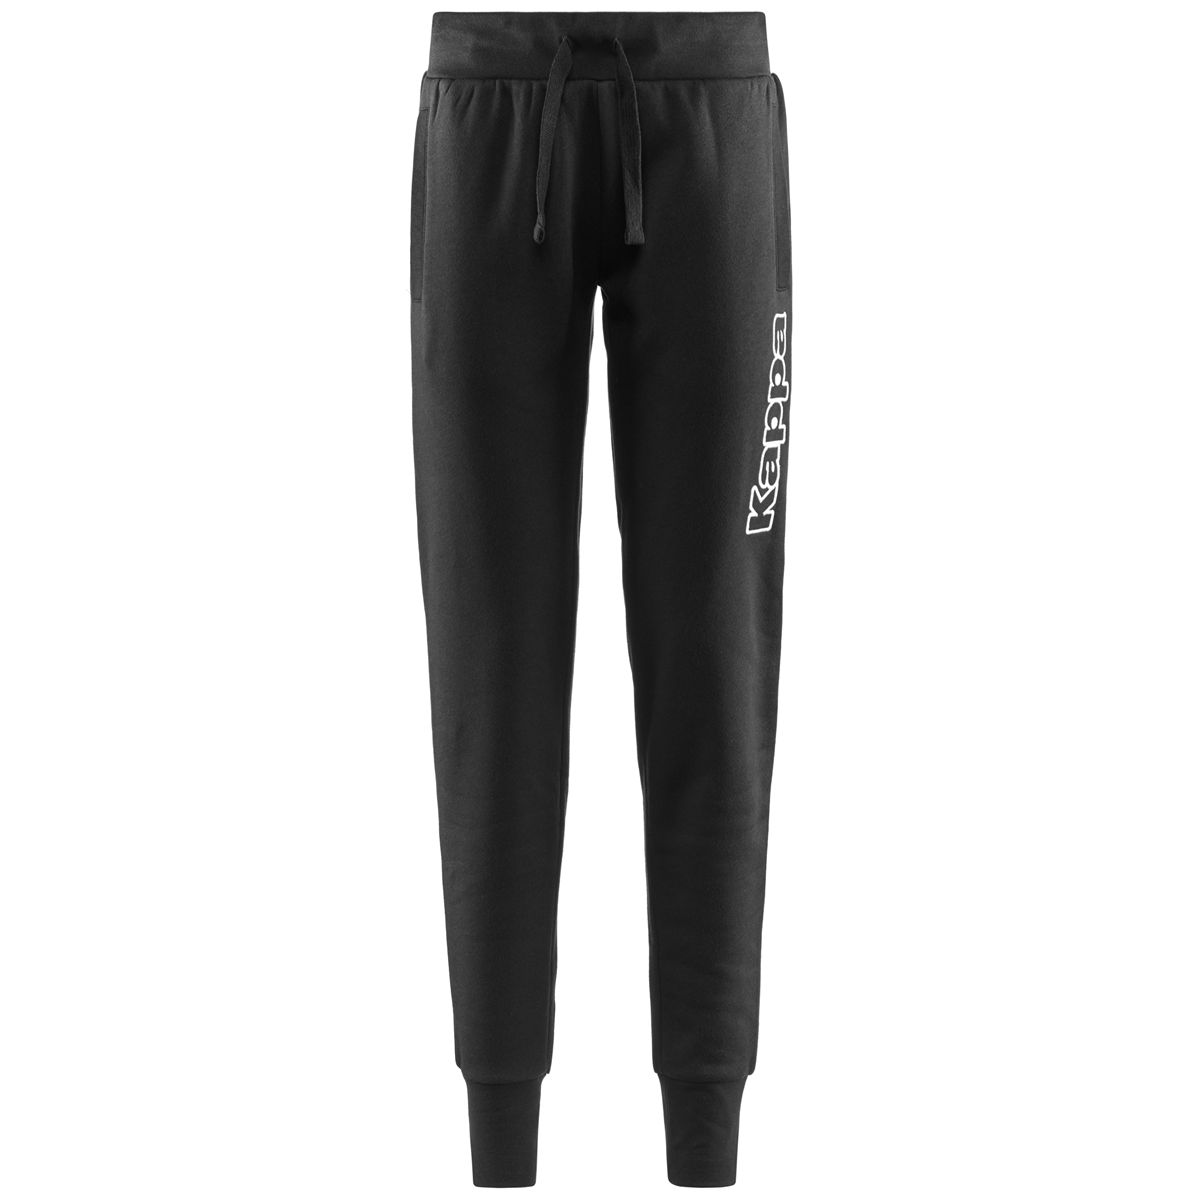 Kappa Pants KAPPA4VOLLEY WINCAN Junior Girl Sport Trousers